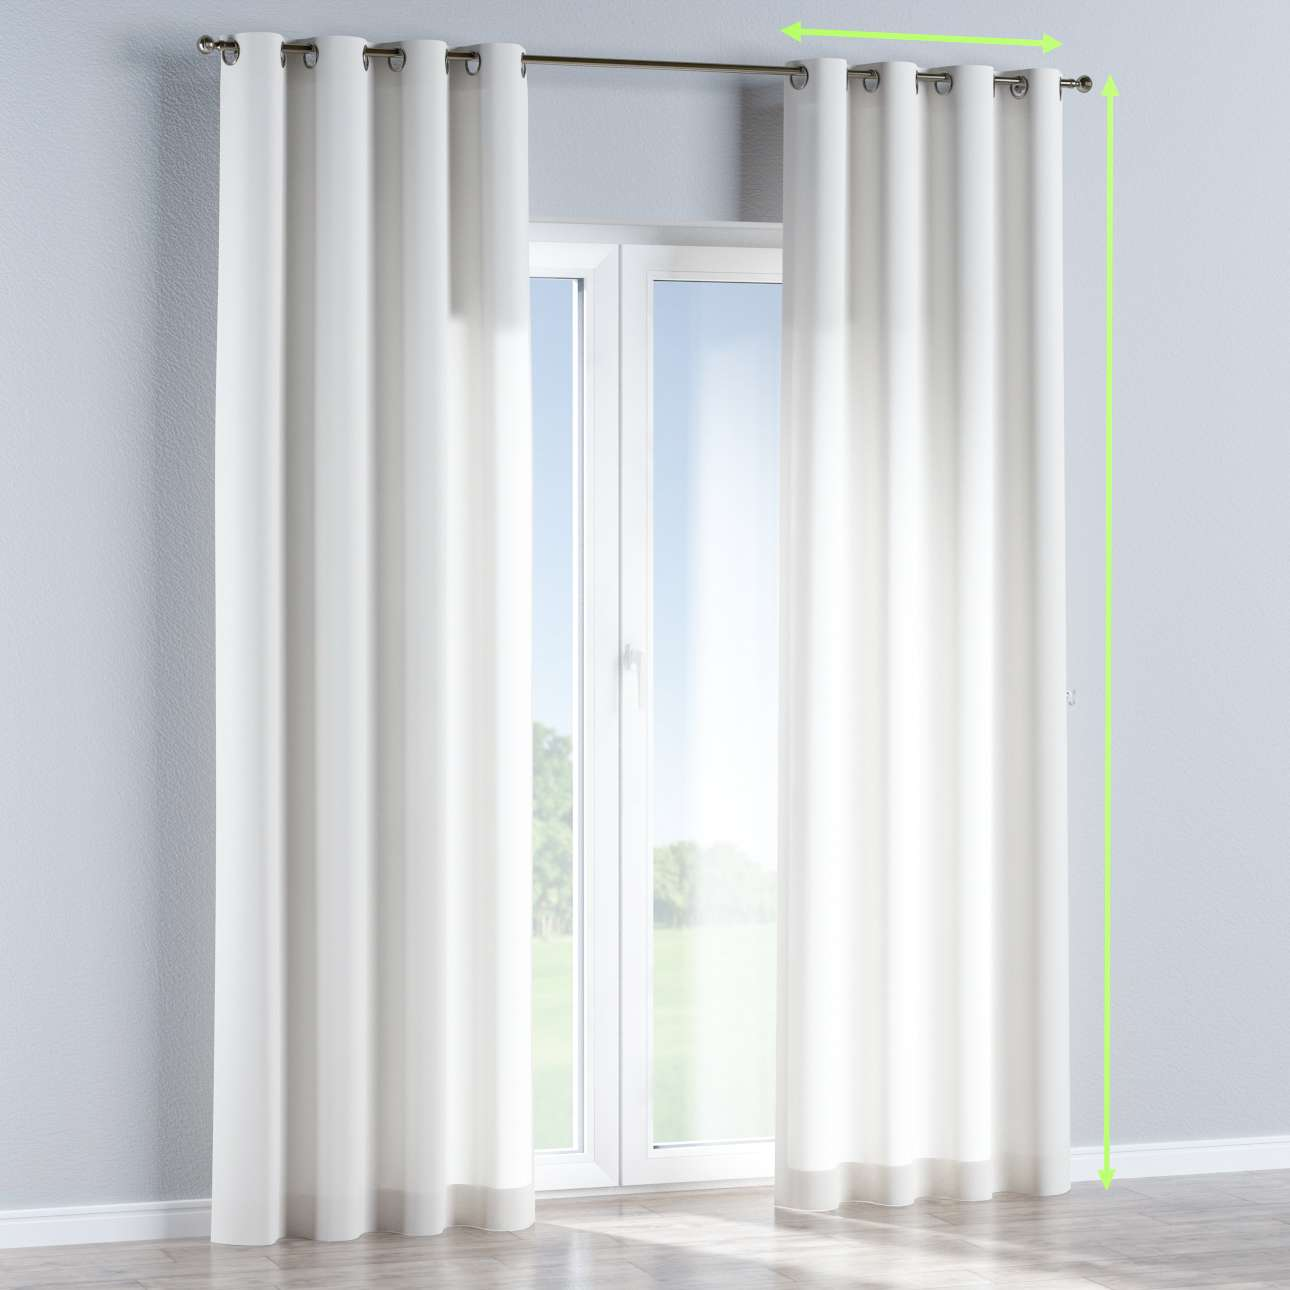 Eyelet curtain in collection Comics/Geometrical, fabric: 139-00